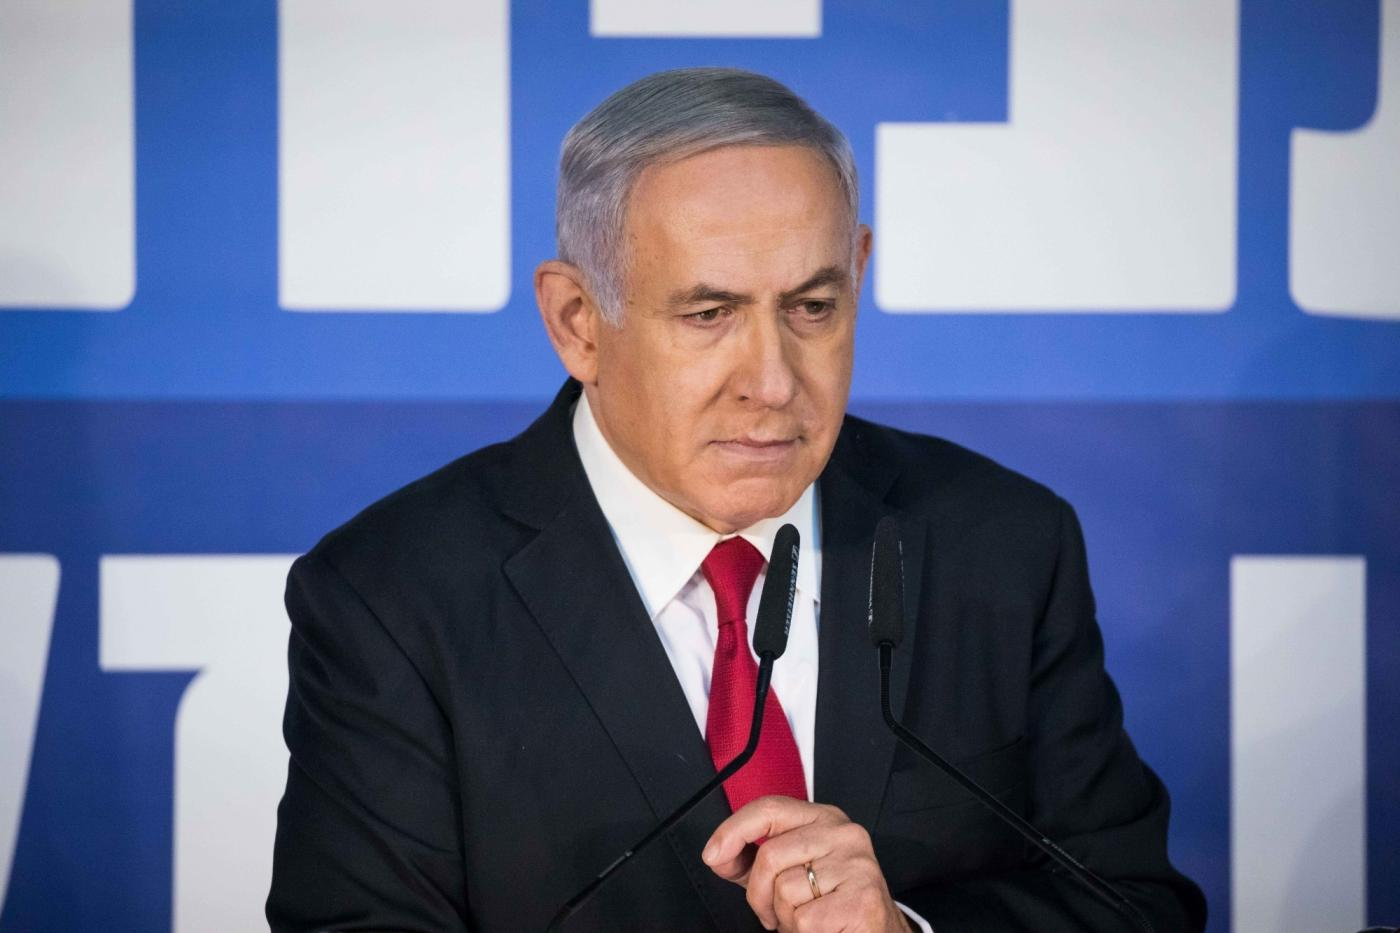 "JERUSALEM, Feb. 28, 2019 (Xinhua) -- Israeli Prime Minister Benjamin Netanyahu speaks to reporters in his Jerusalem office, on Feb. 28, 2019. Israeli Prime Minister Benjamin Netanyahu on Thursday blasted the decision by the attorney general to charge him with corruption as a left-wing ""conspiracy."" (Xinhua/JINI/IANS) by ."